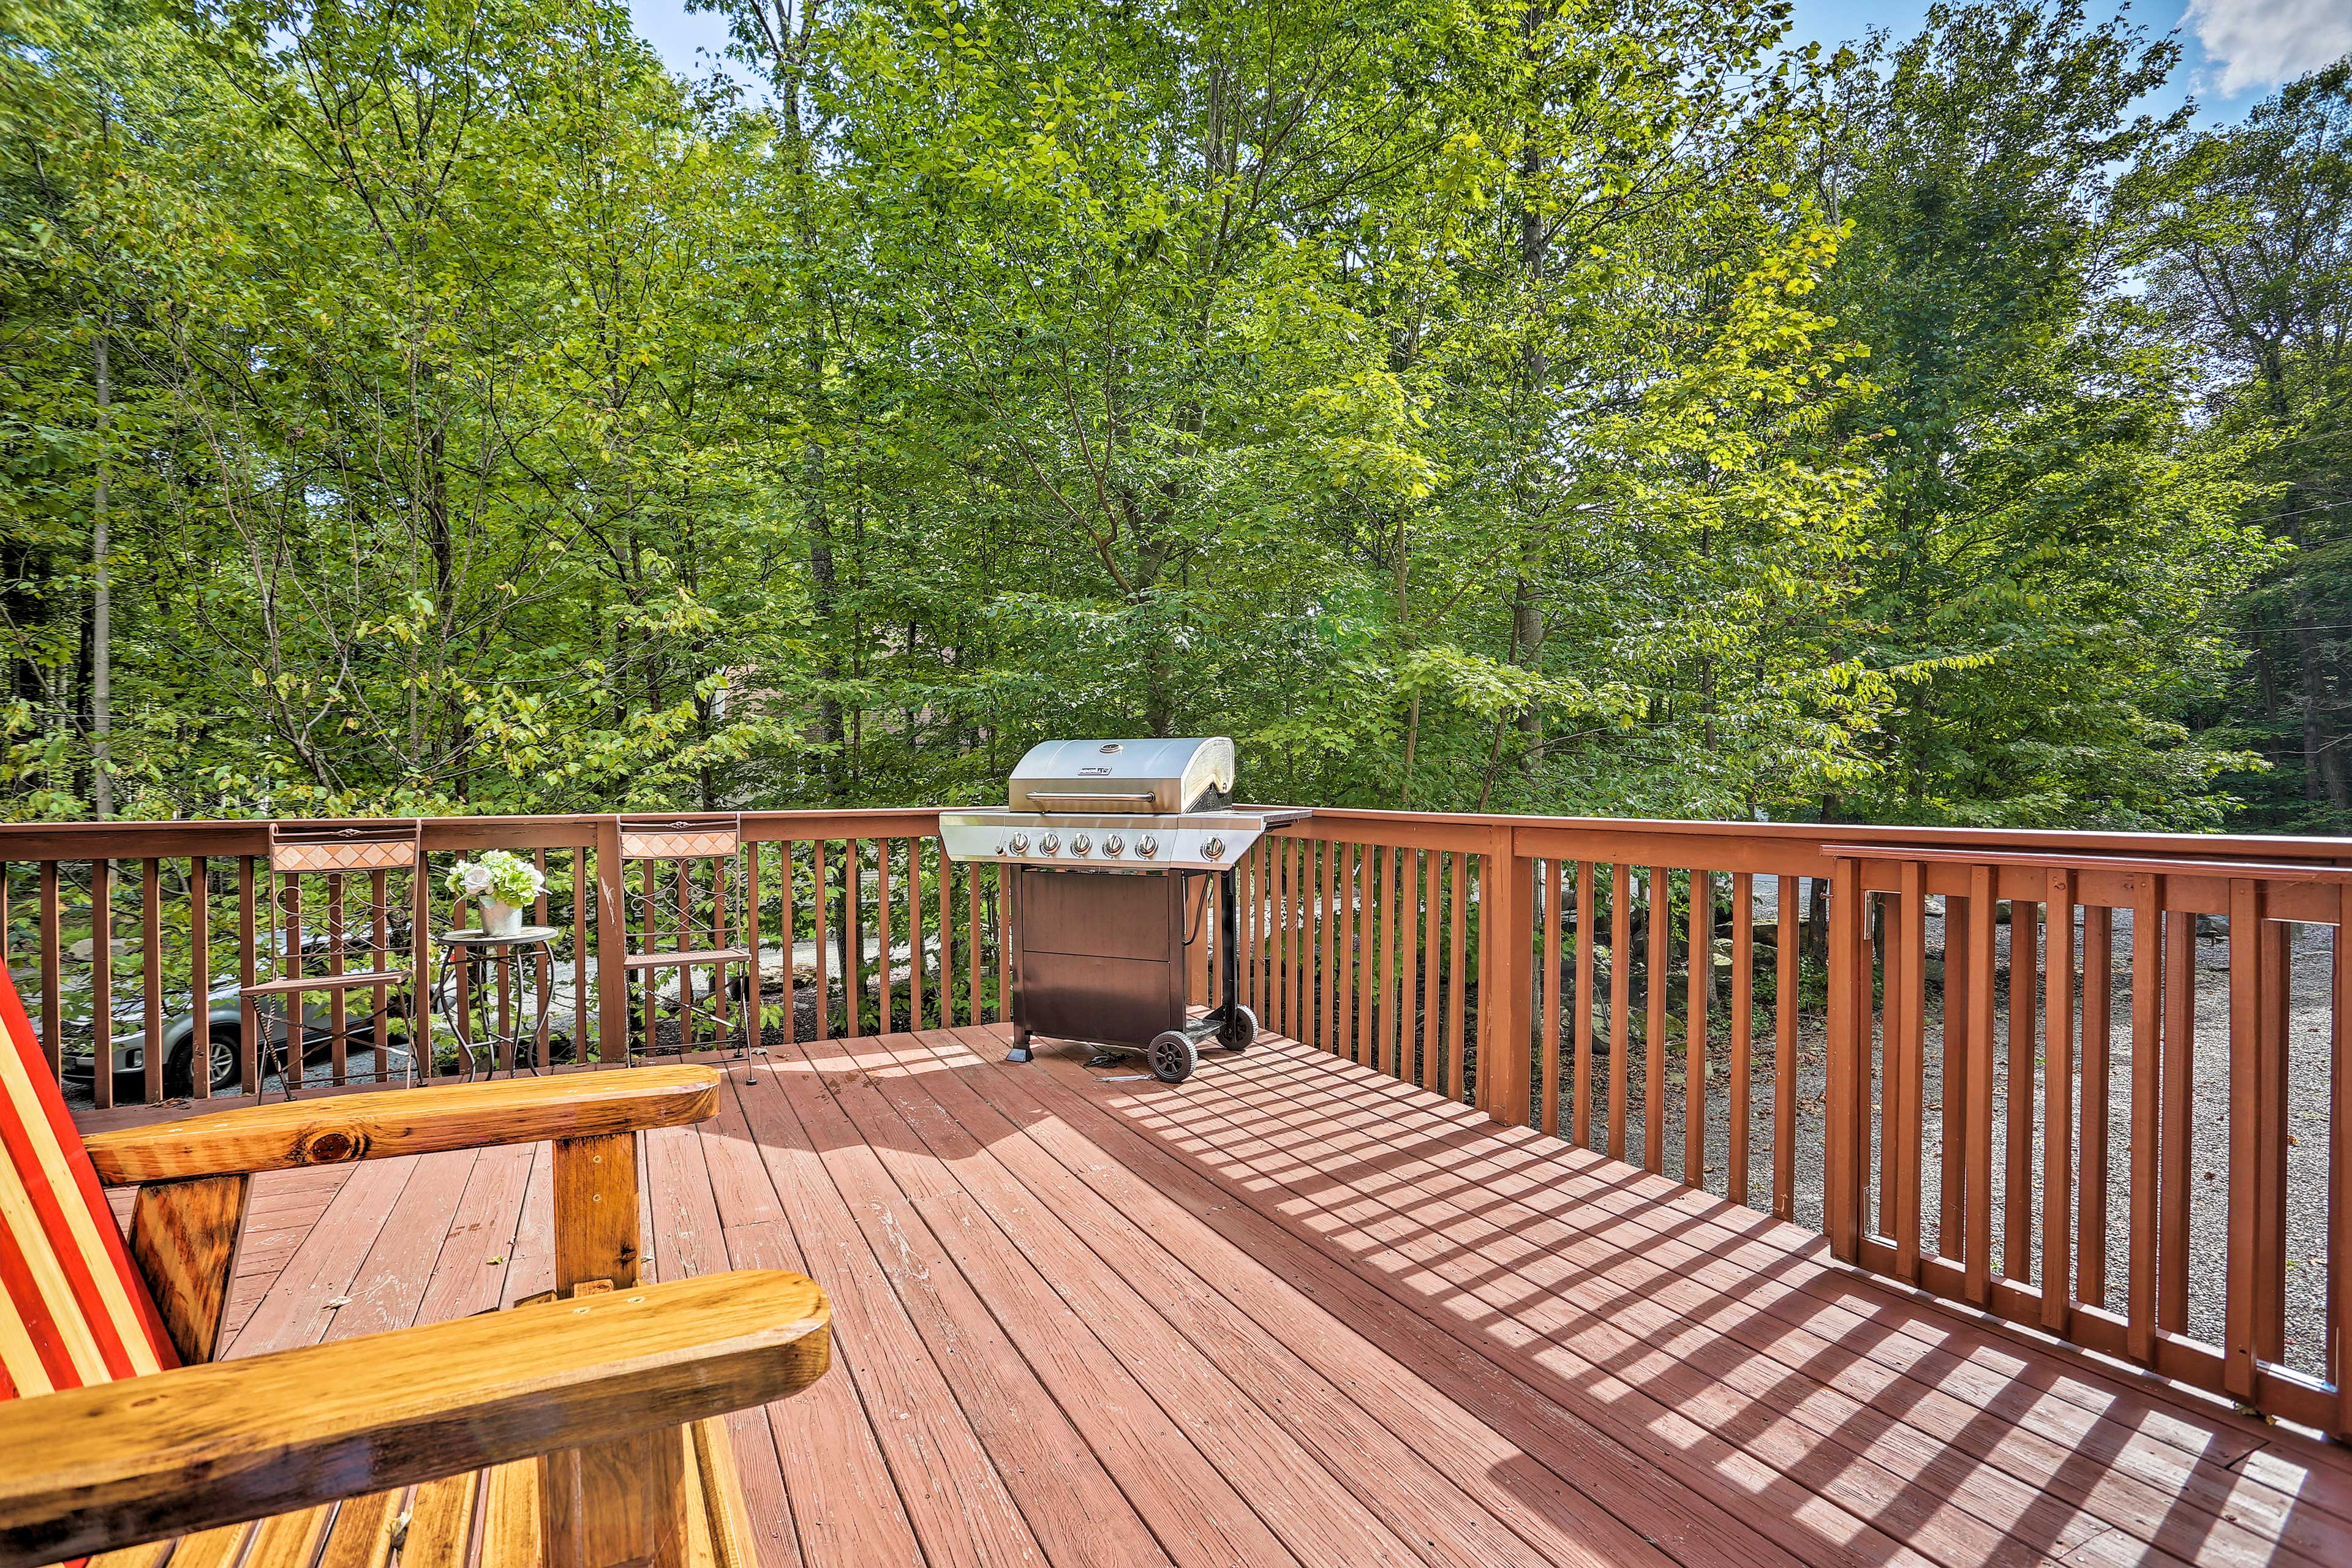 Soak in forest views from the spacious deck.